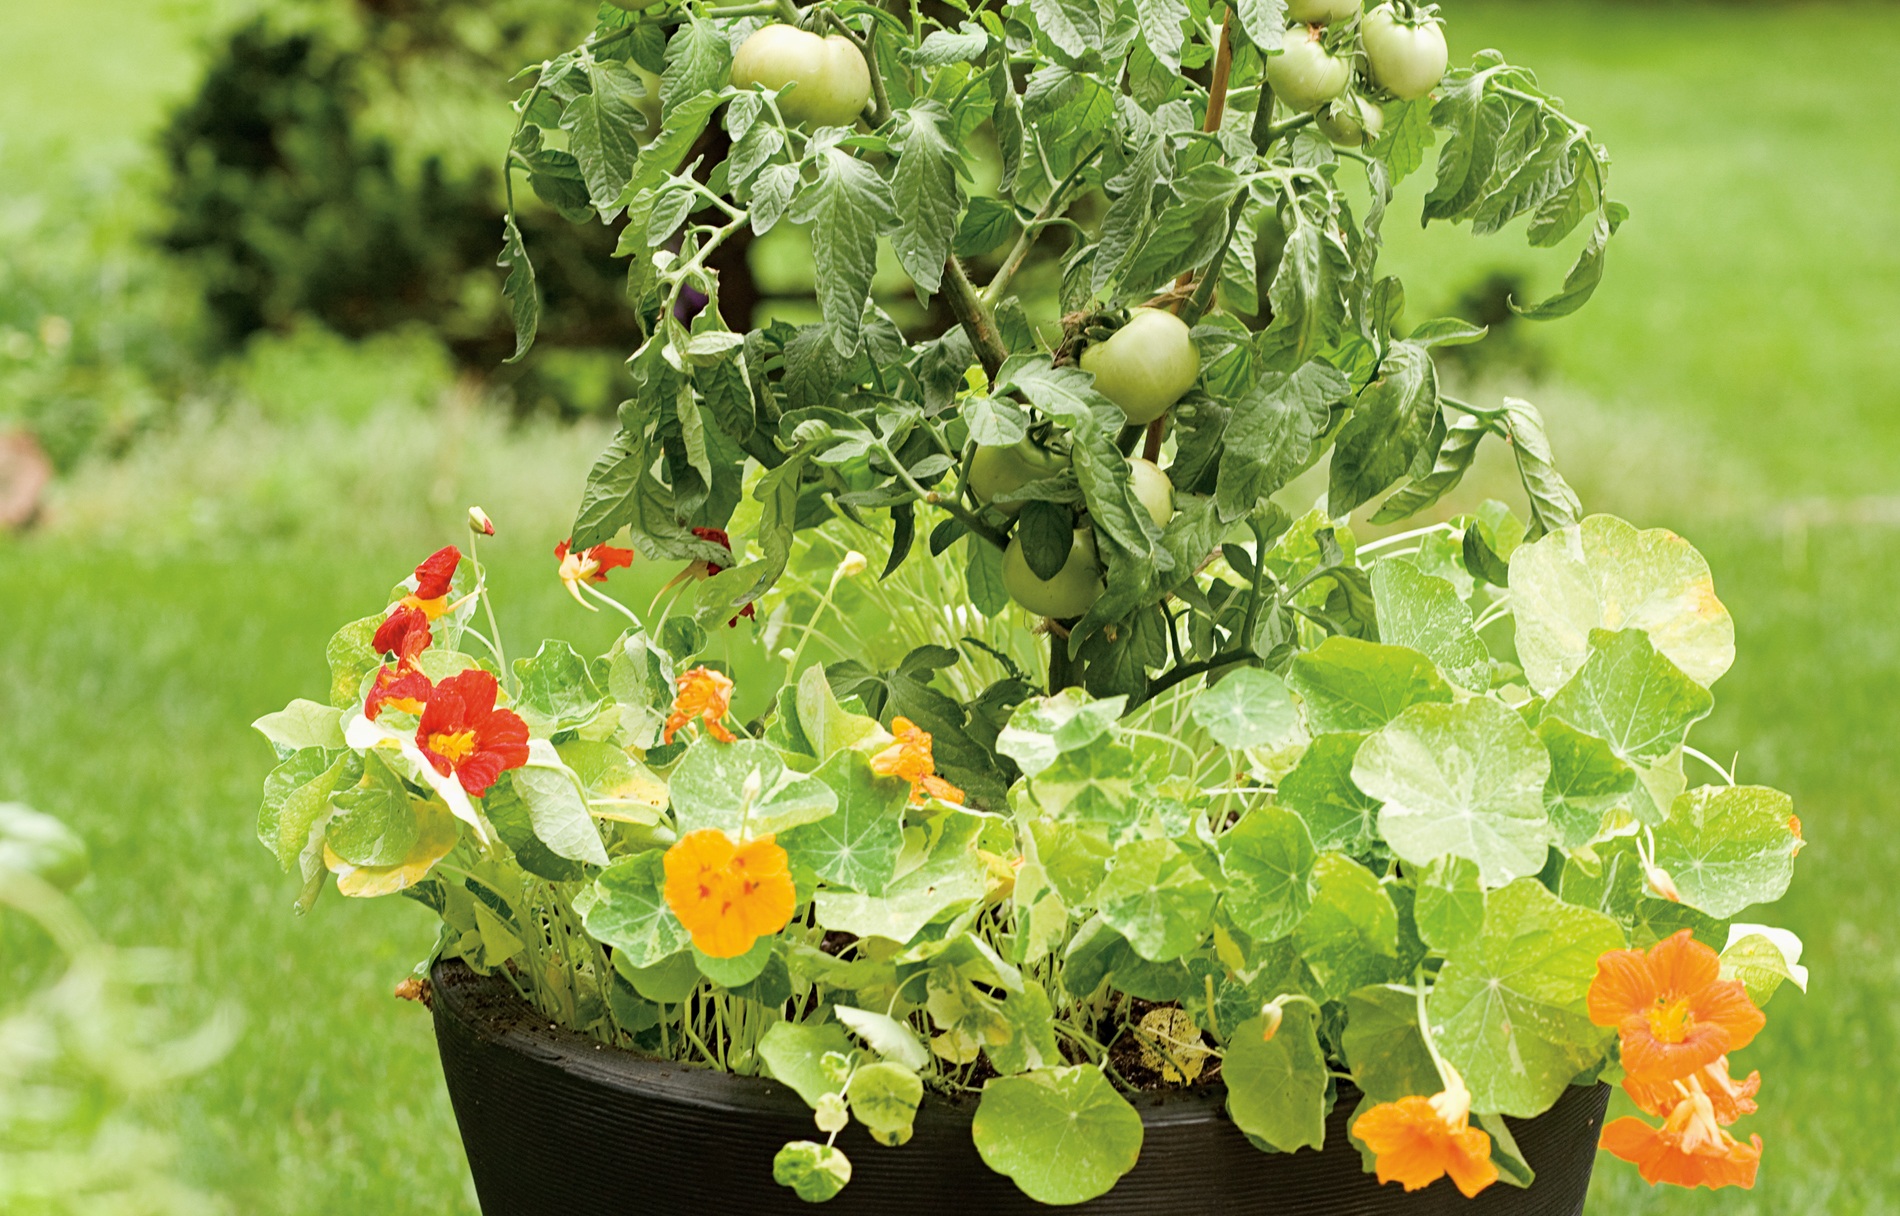 Garden planter filled with flowers and tomatoes, in a backyard setting.